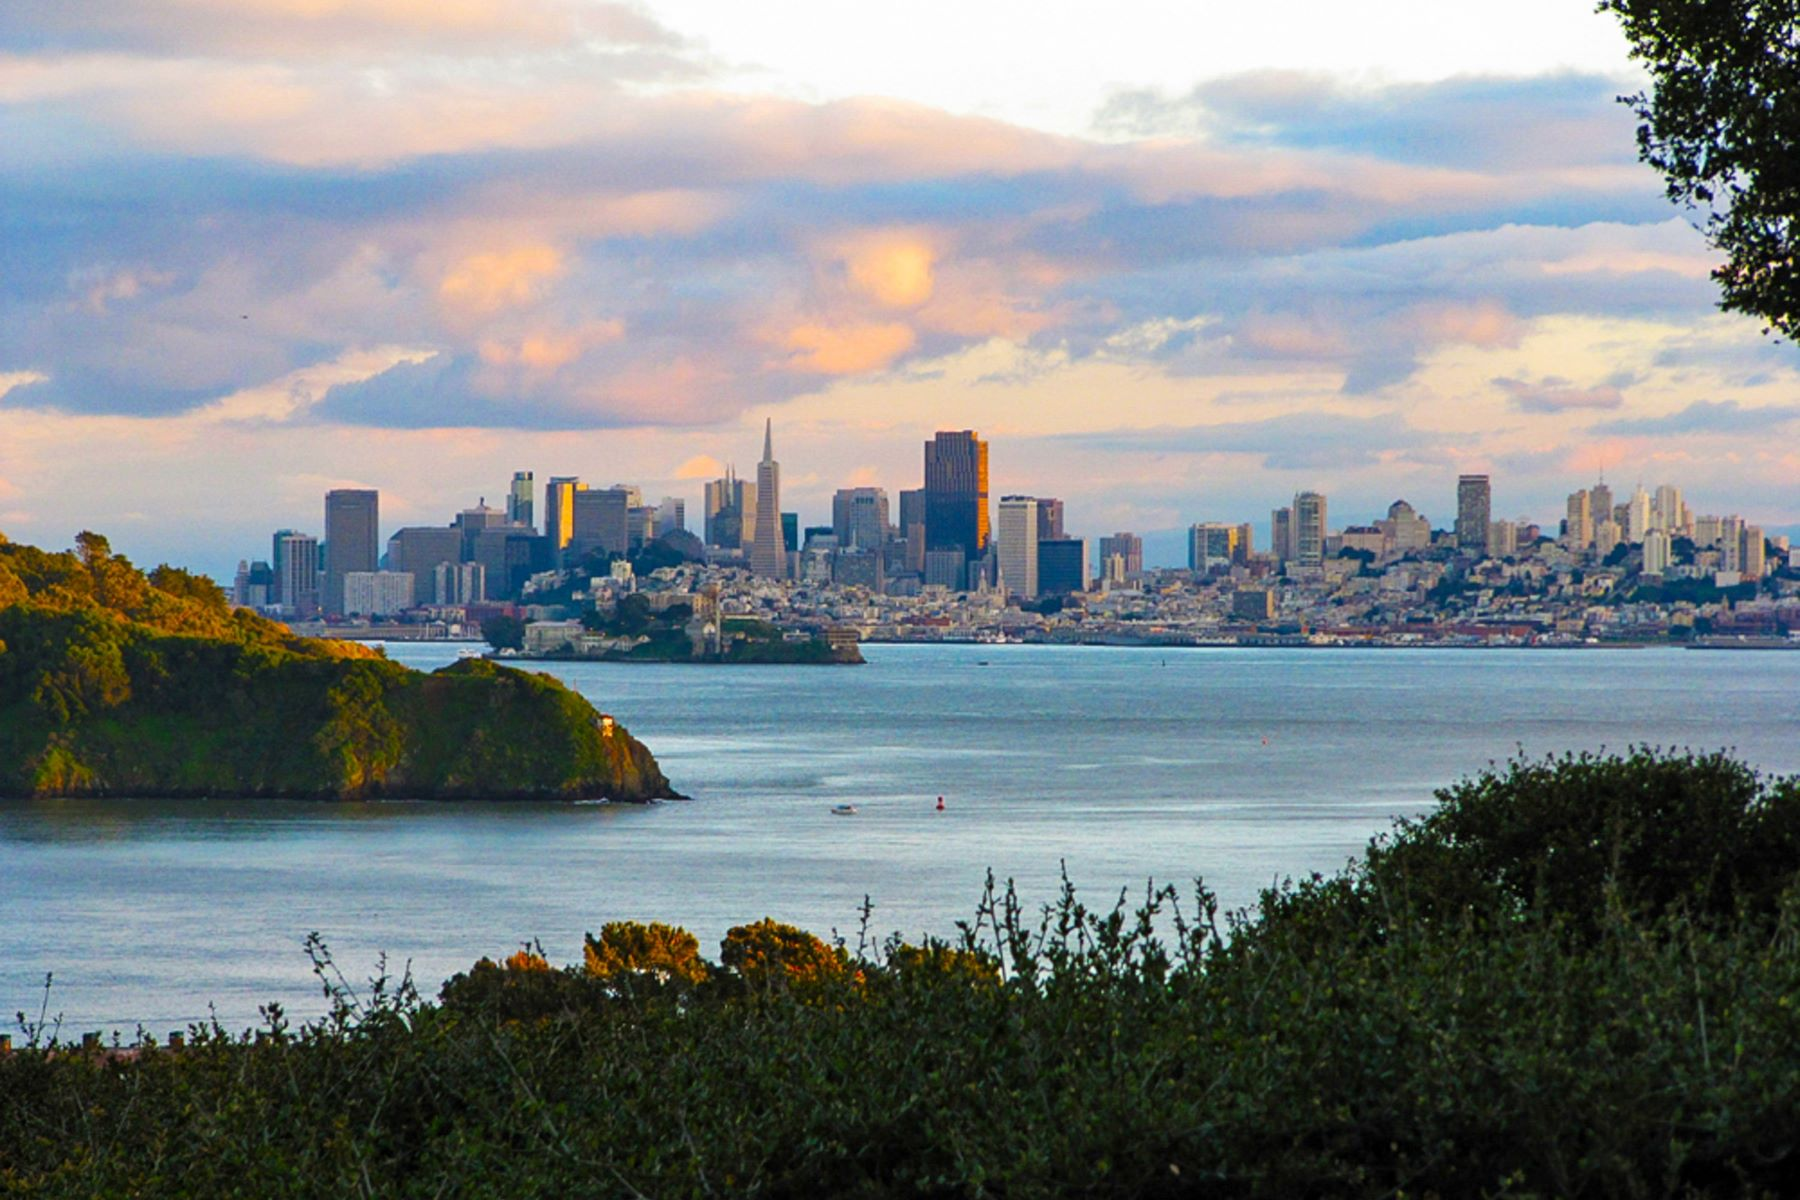 Property for Sale at San Francisco Skyline View Townhome 124 Red Hill Circle Tiburon, California 94920 United States